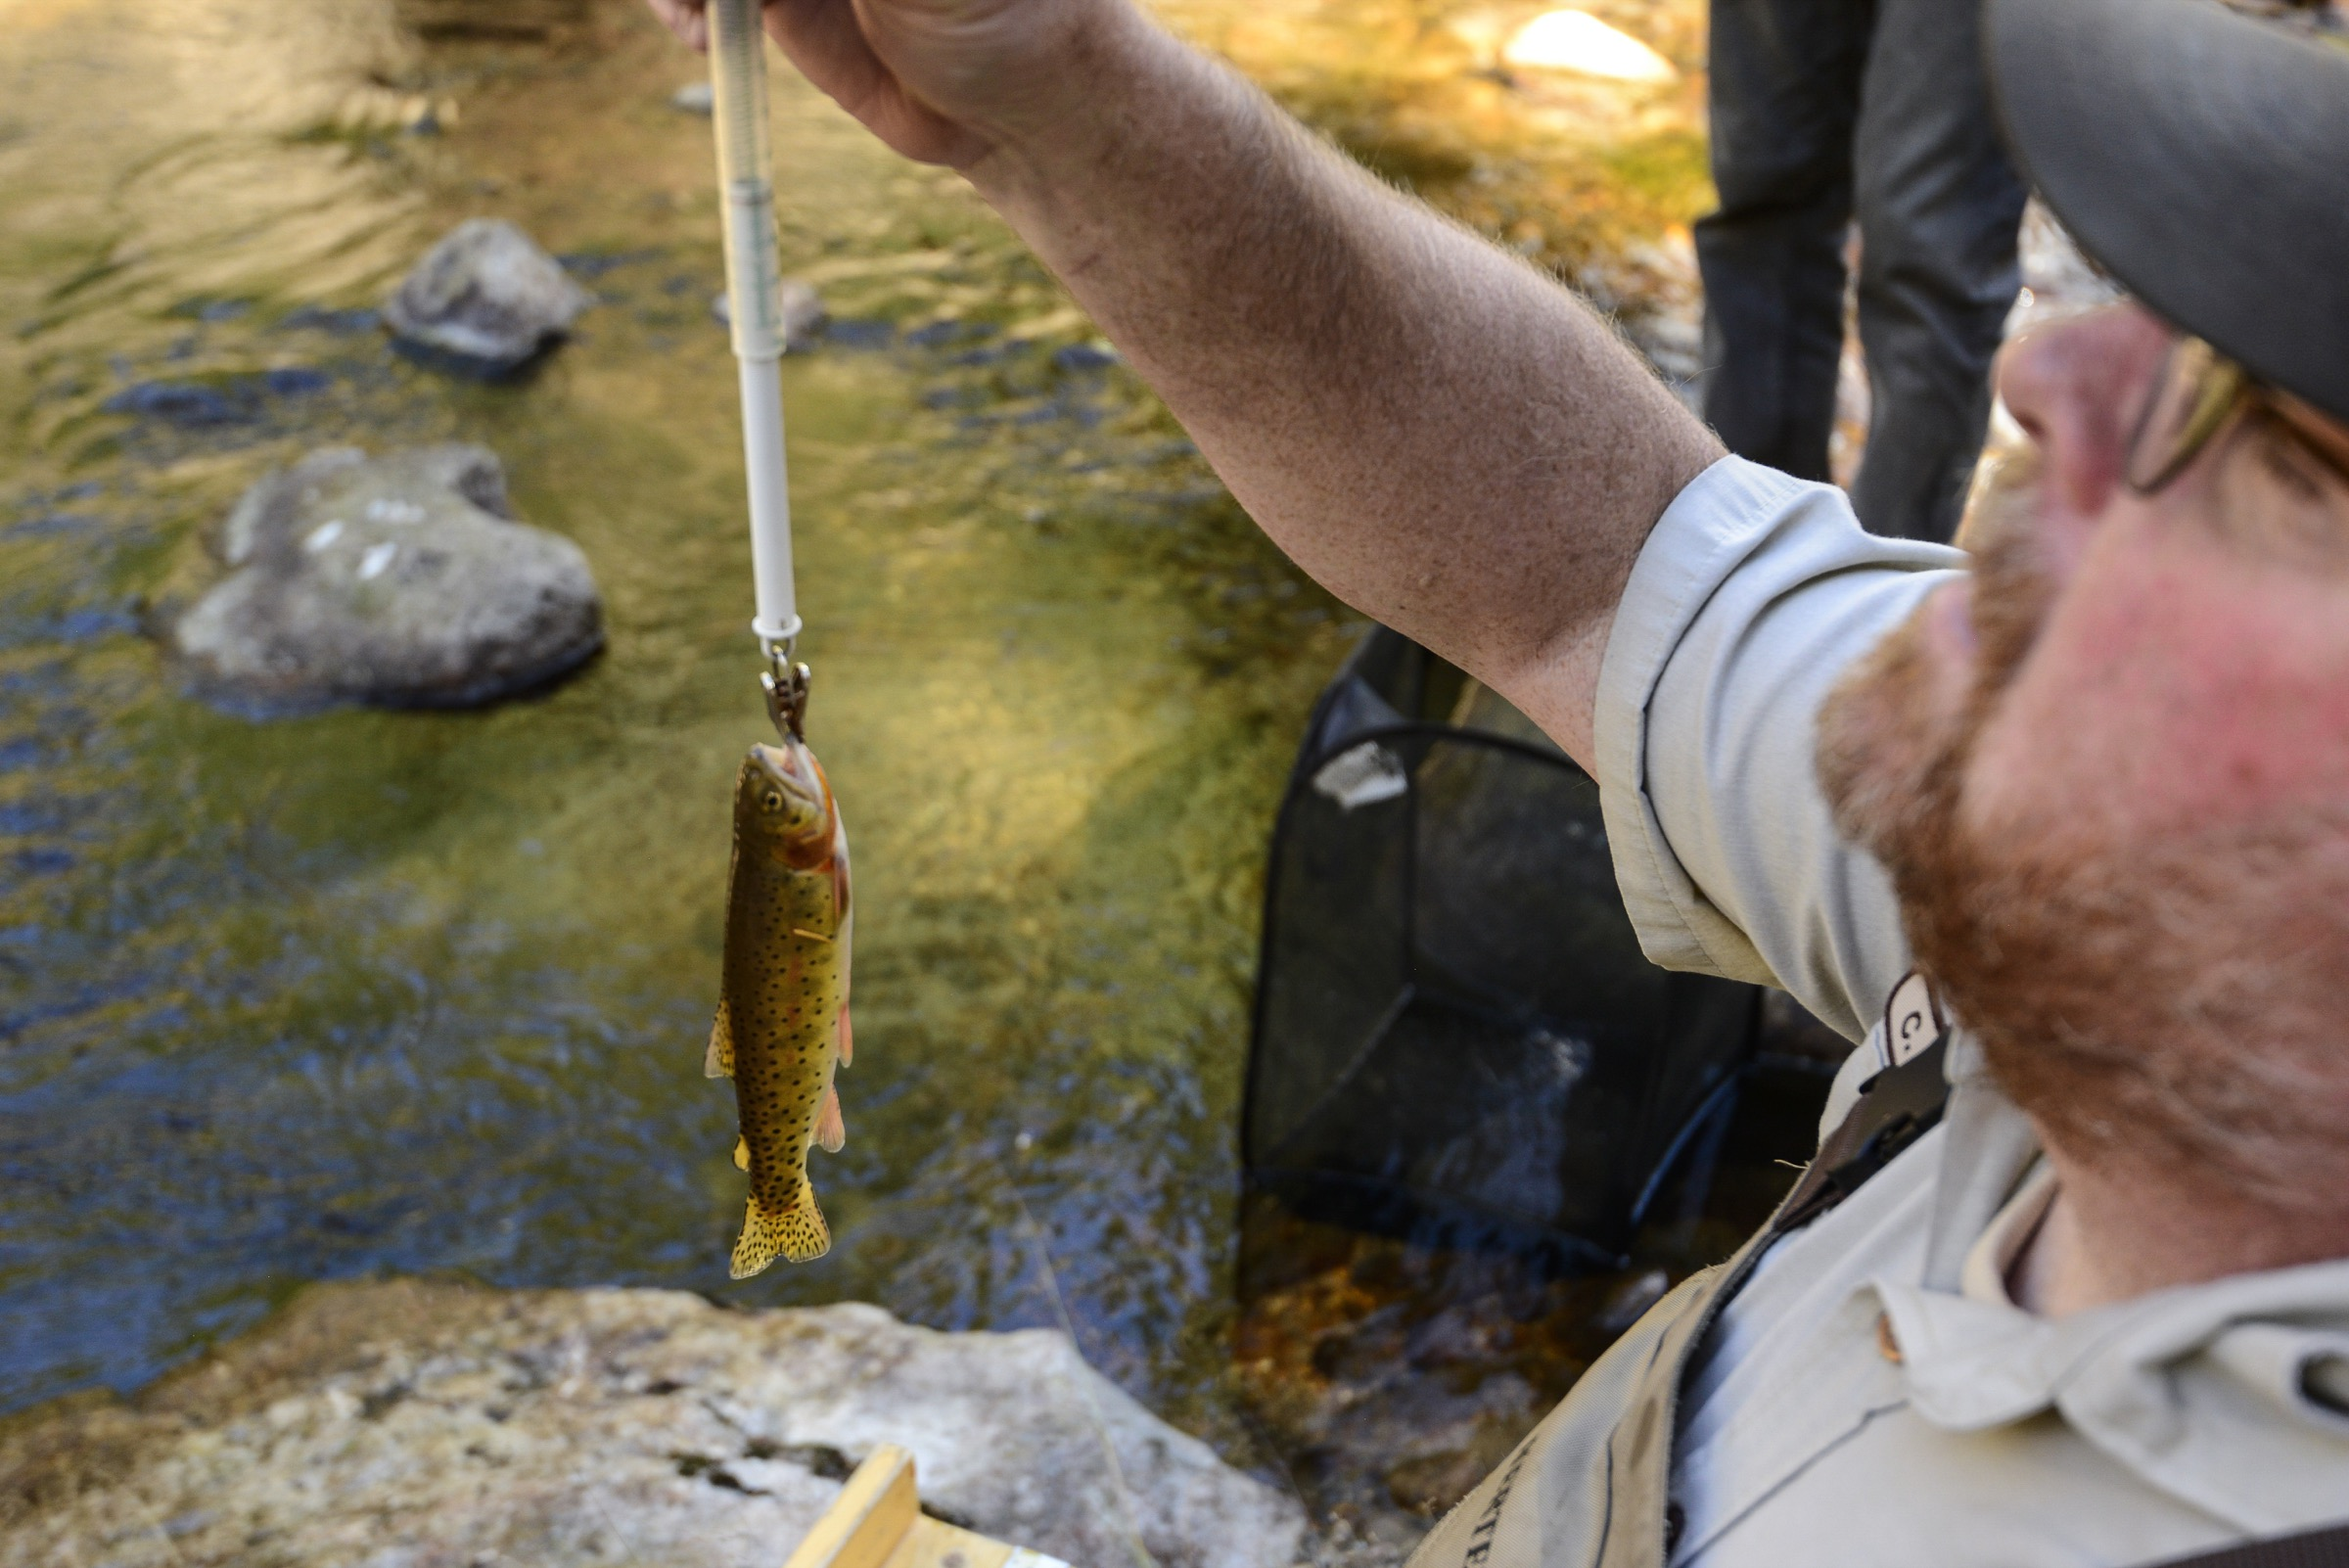 Biologist Chris Kennedy weighs a small cutthroat trout that he and his team caught electrofishing in Rocky Mountain National Park's West Creek.Photograph by Lindsay Fendt